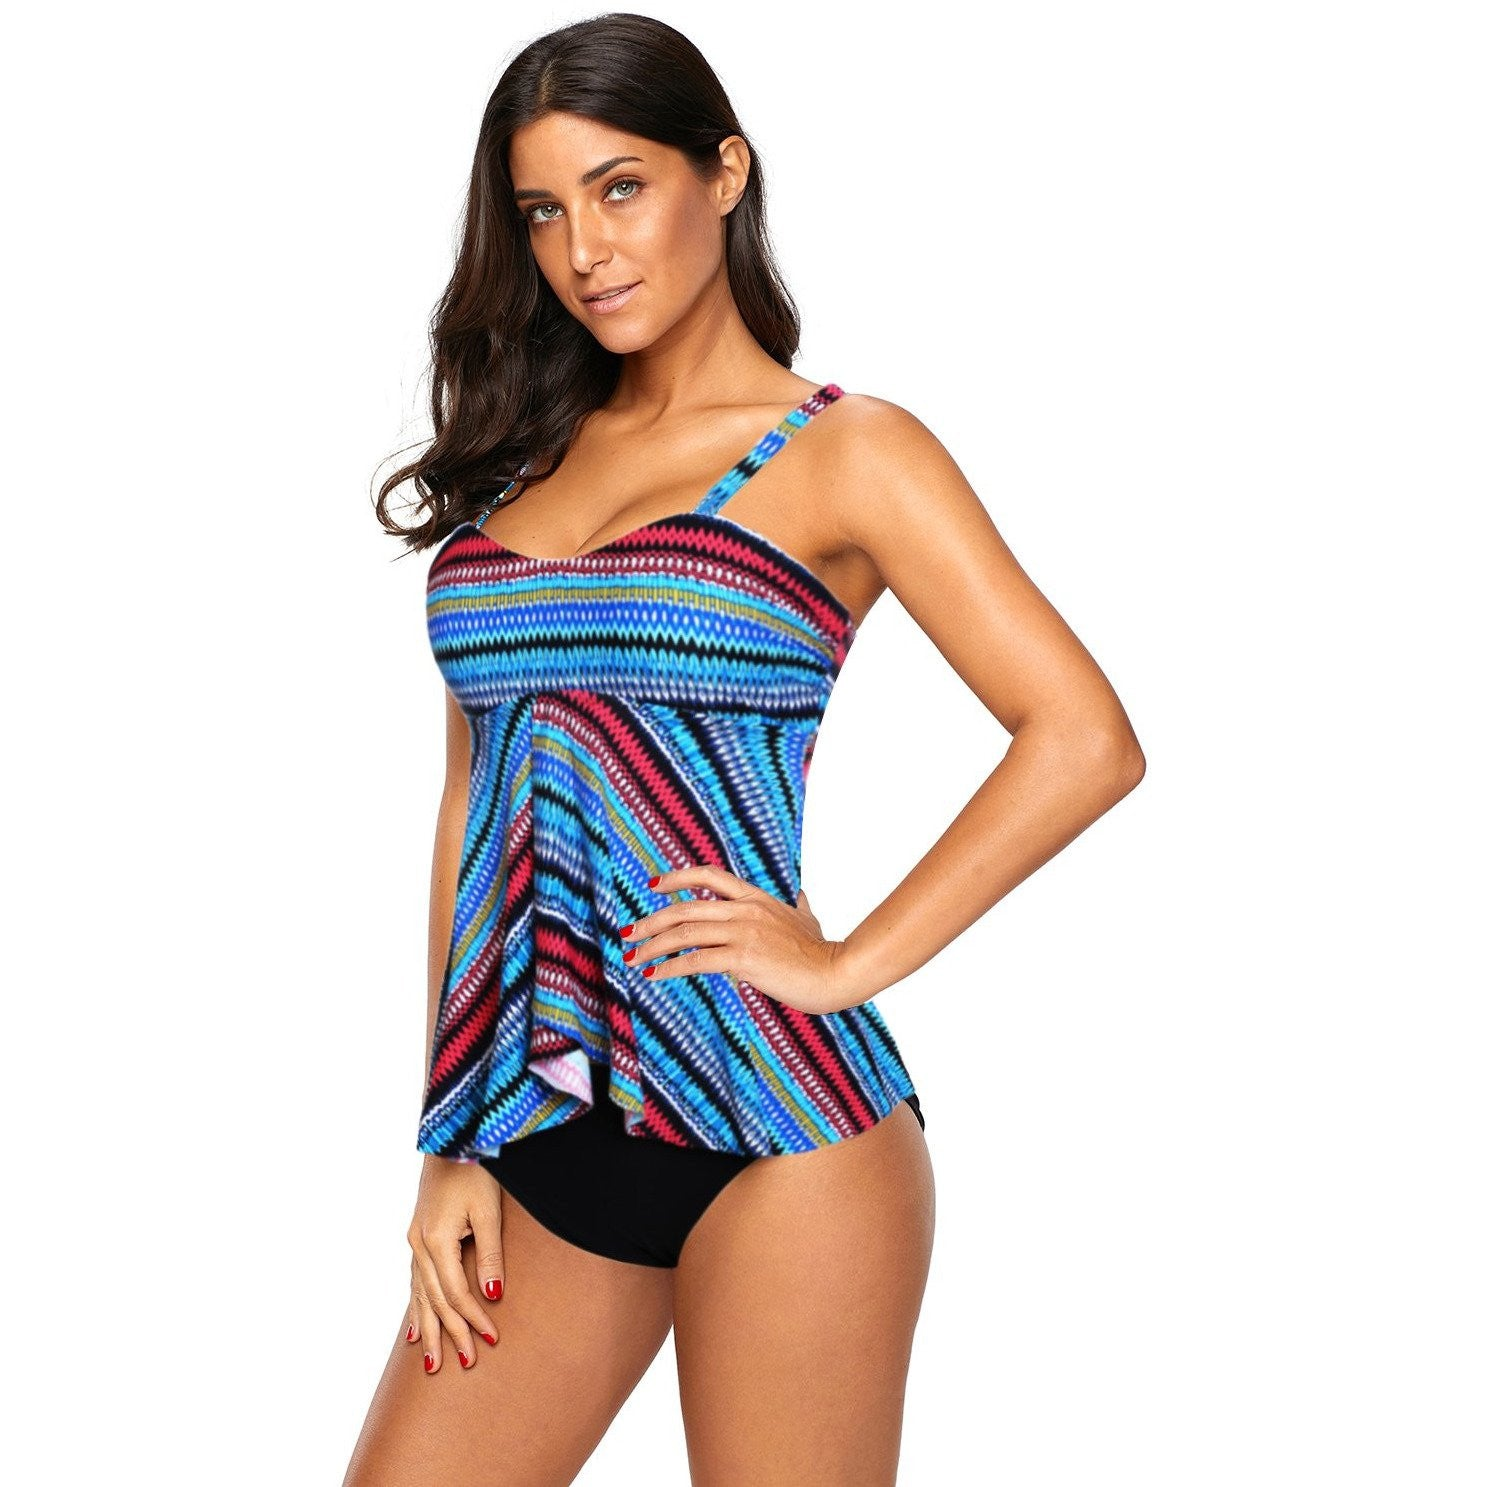 KELLIPS Blue High Waist Tankini Set - KELLIPS